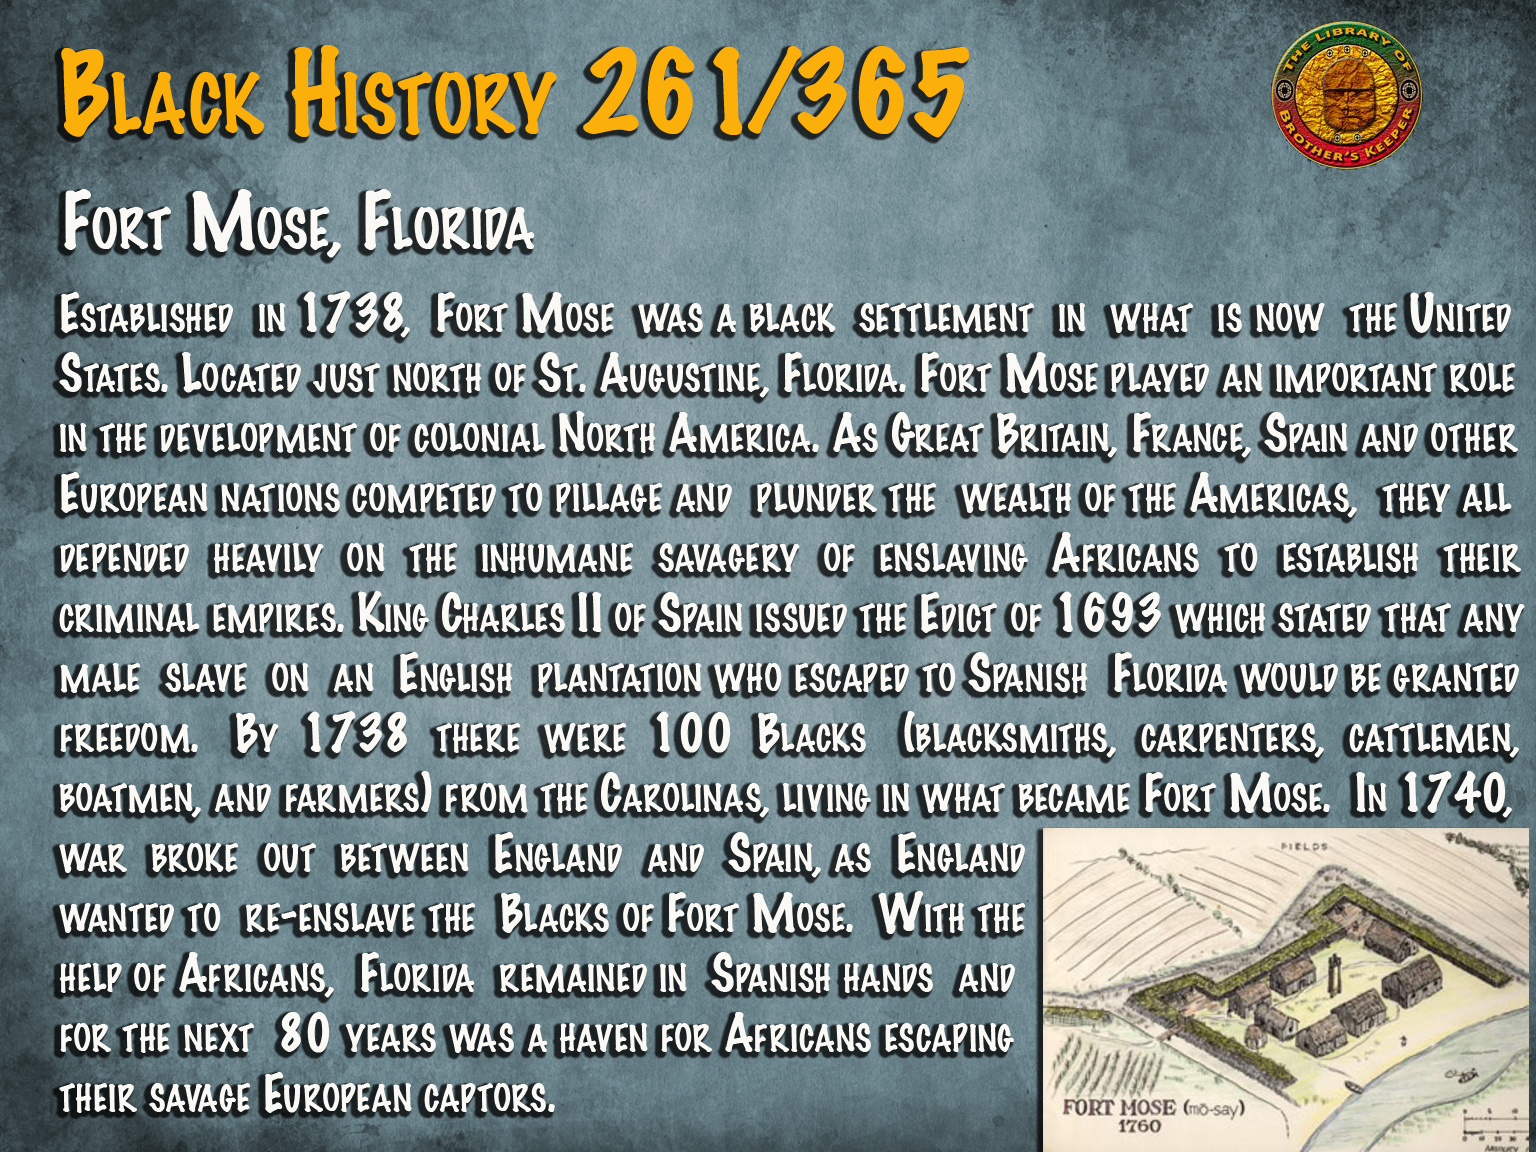 Fort Mose, Florida